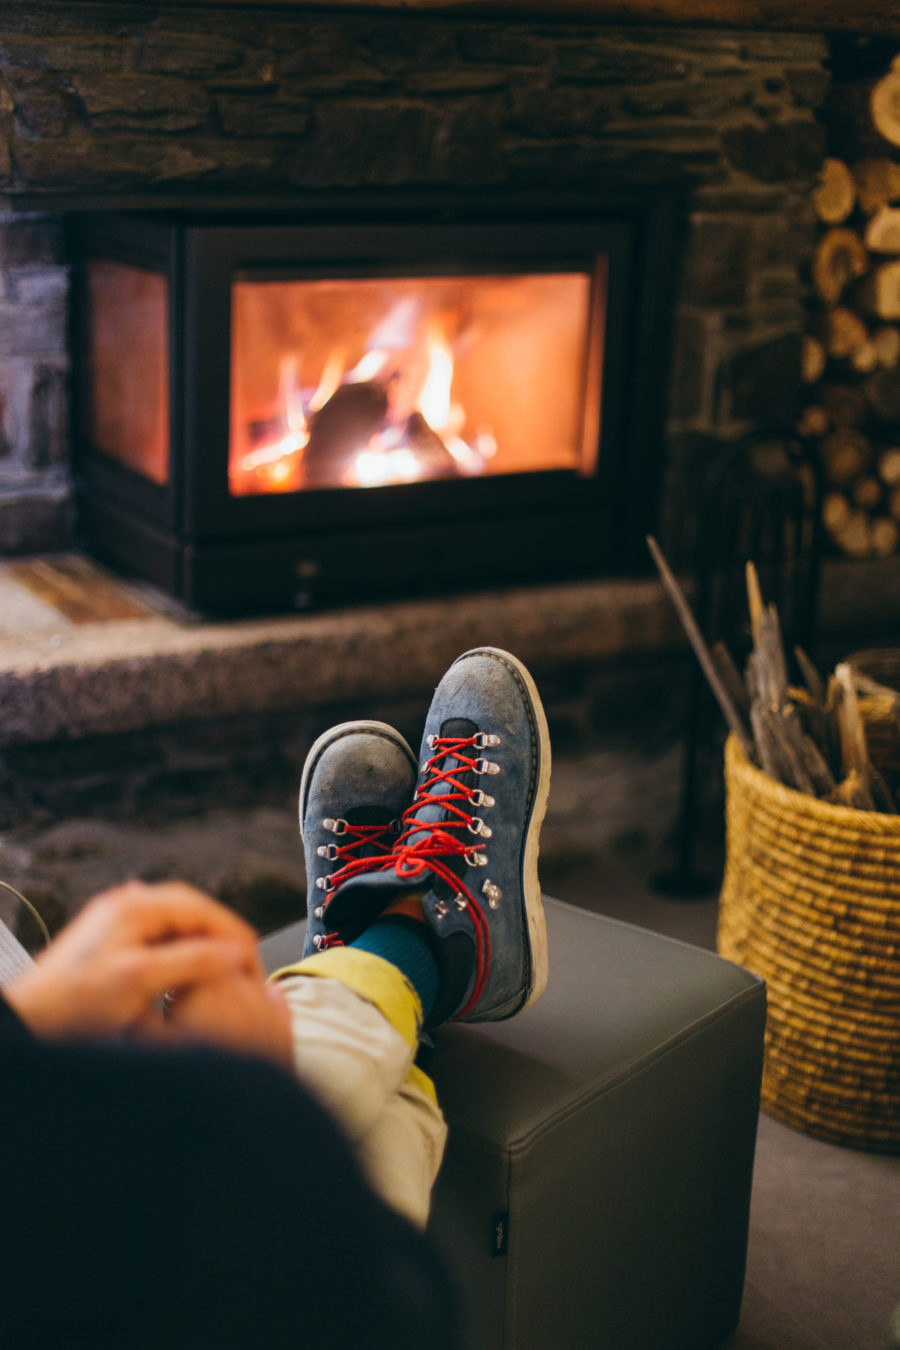 Traveller or tourist rests near the fireplace with their feet up